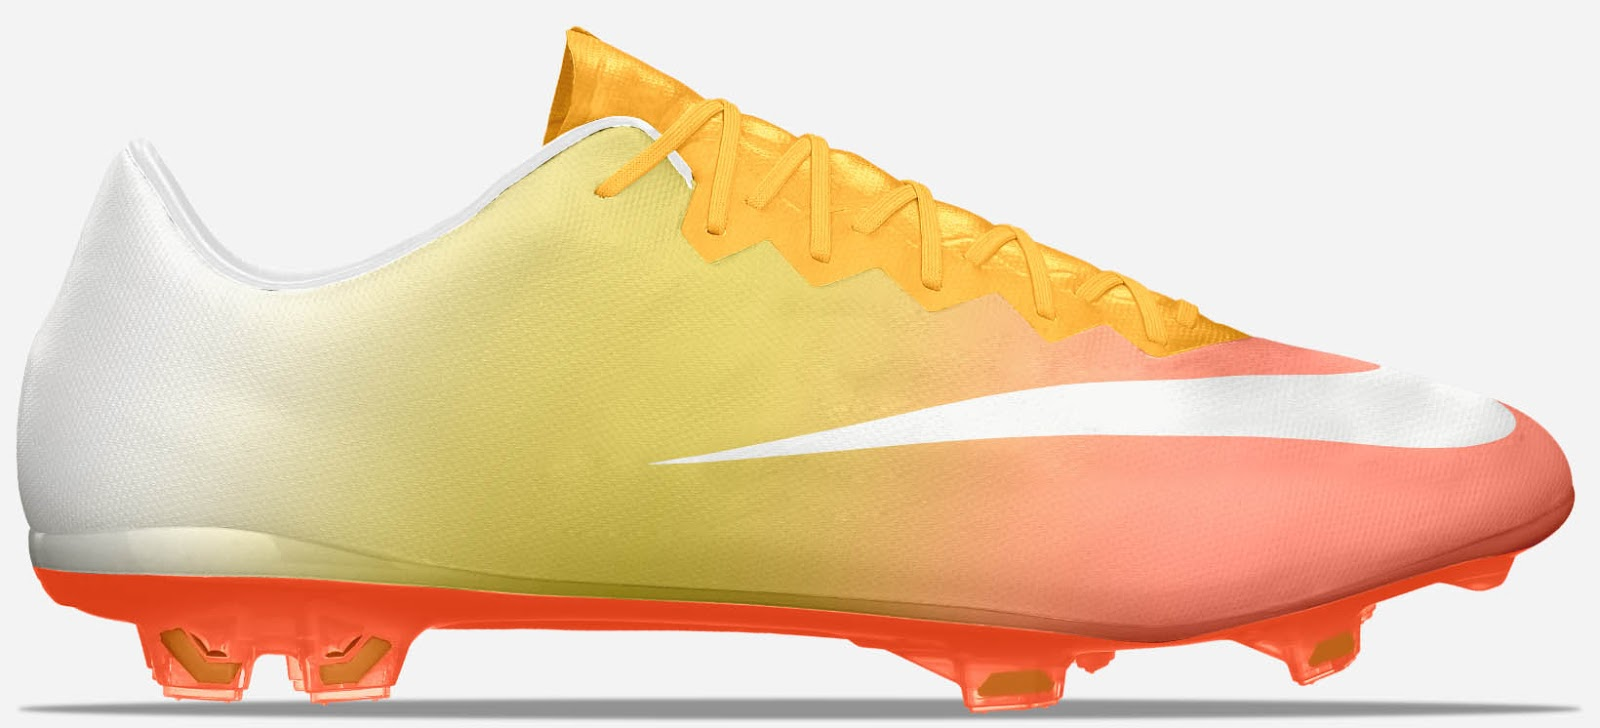 fresh nike mercurial vapor x 2016 multicolor boots leaked